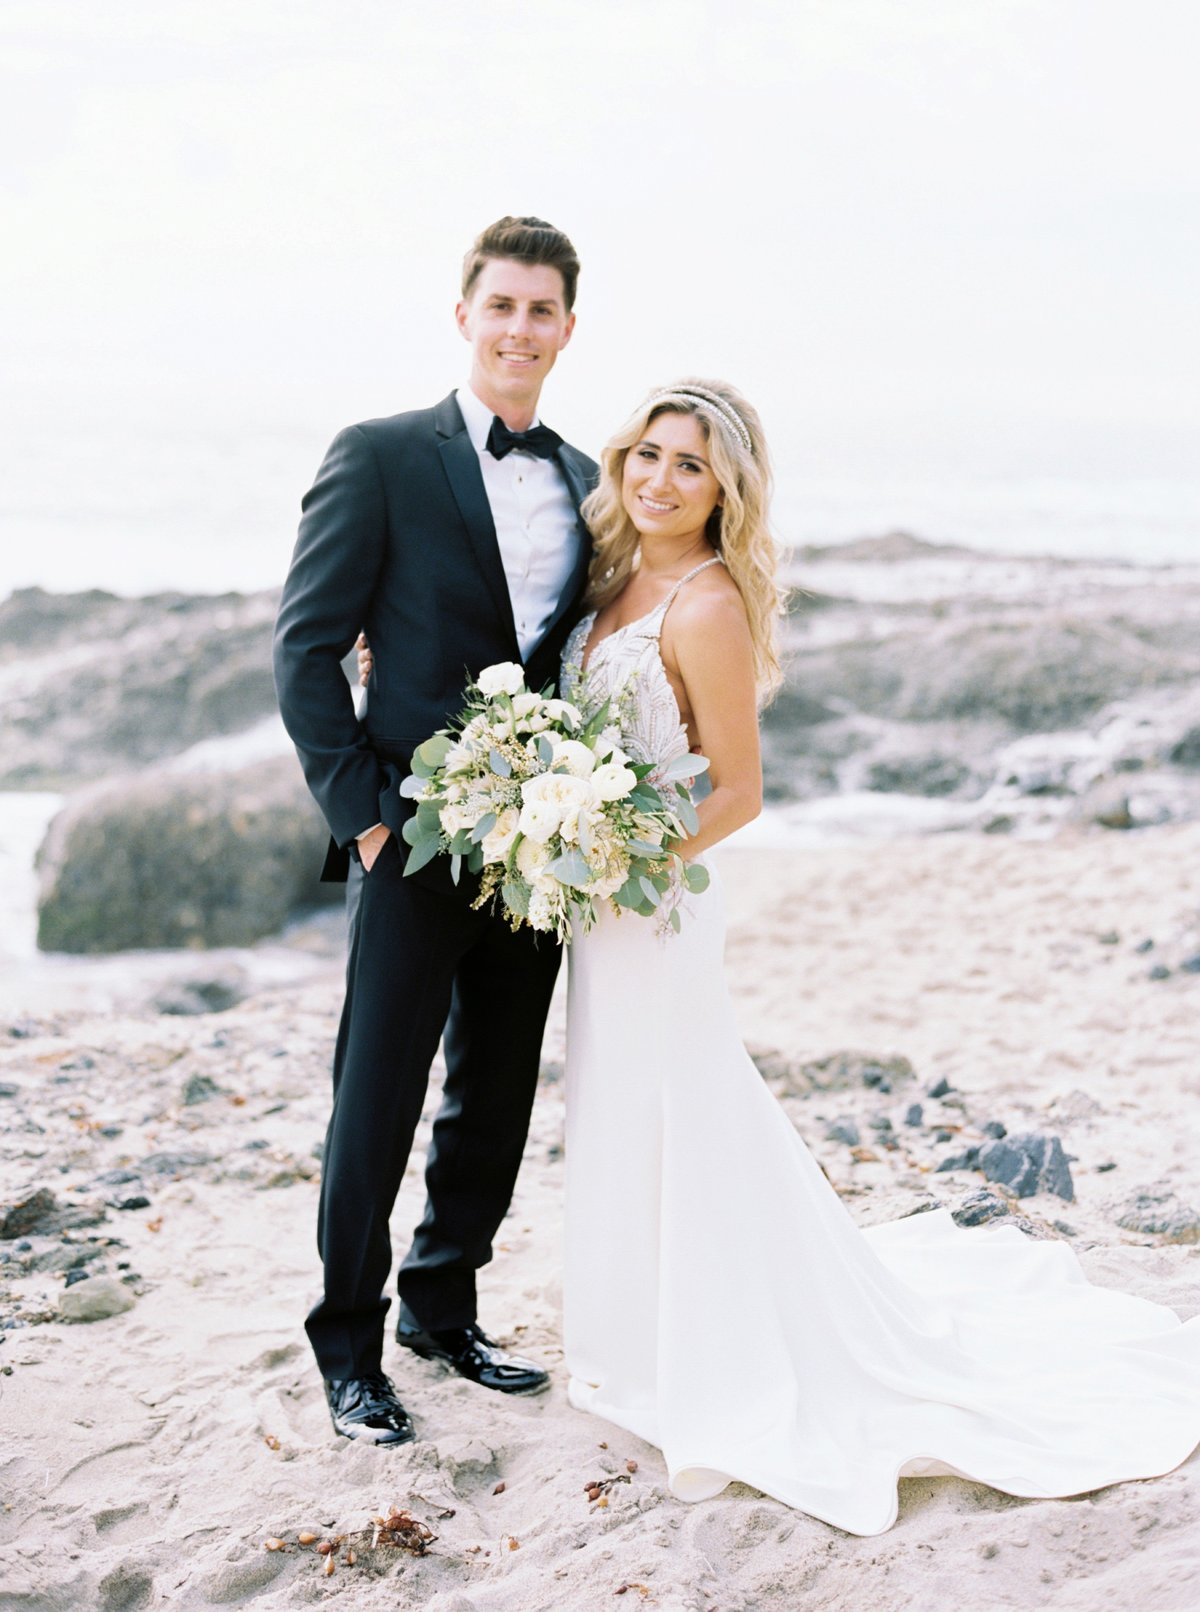 nicoleclareyphotography_evan+jeff_laguna beach_wedding_0014